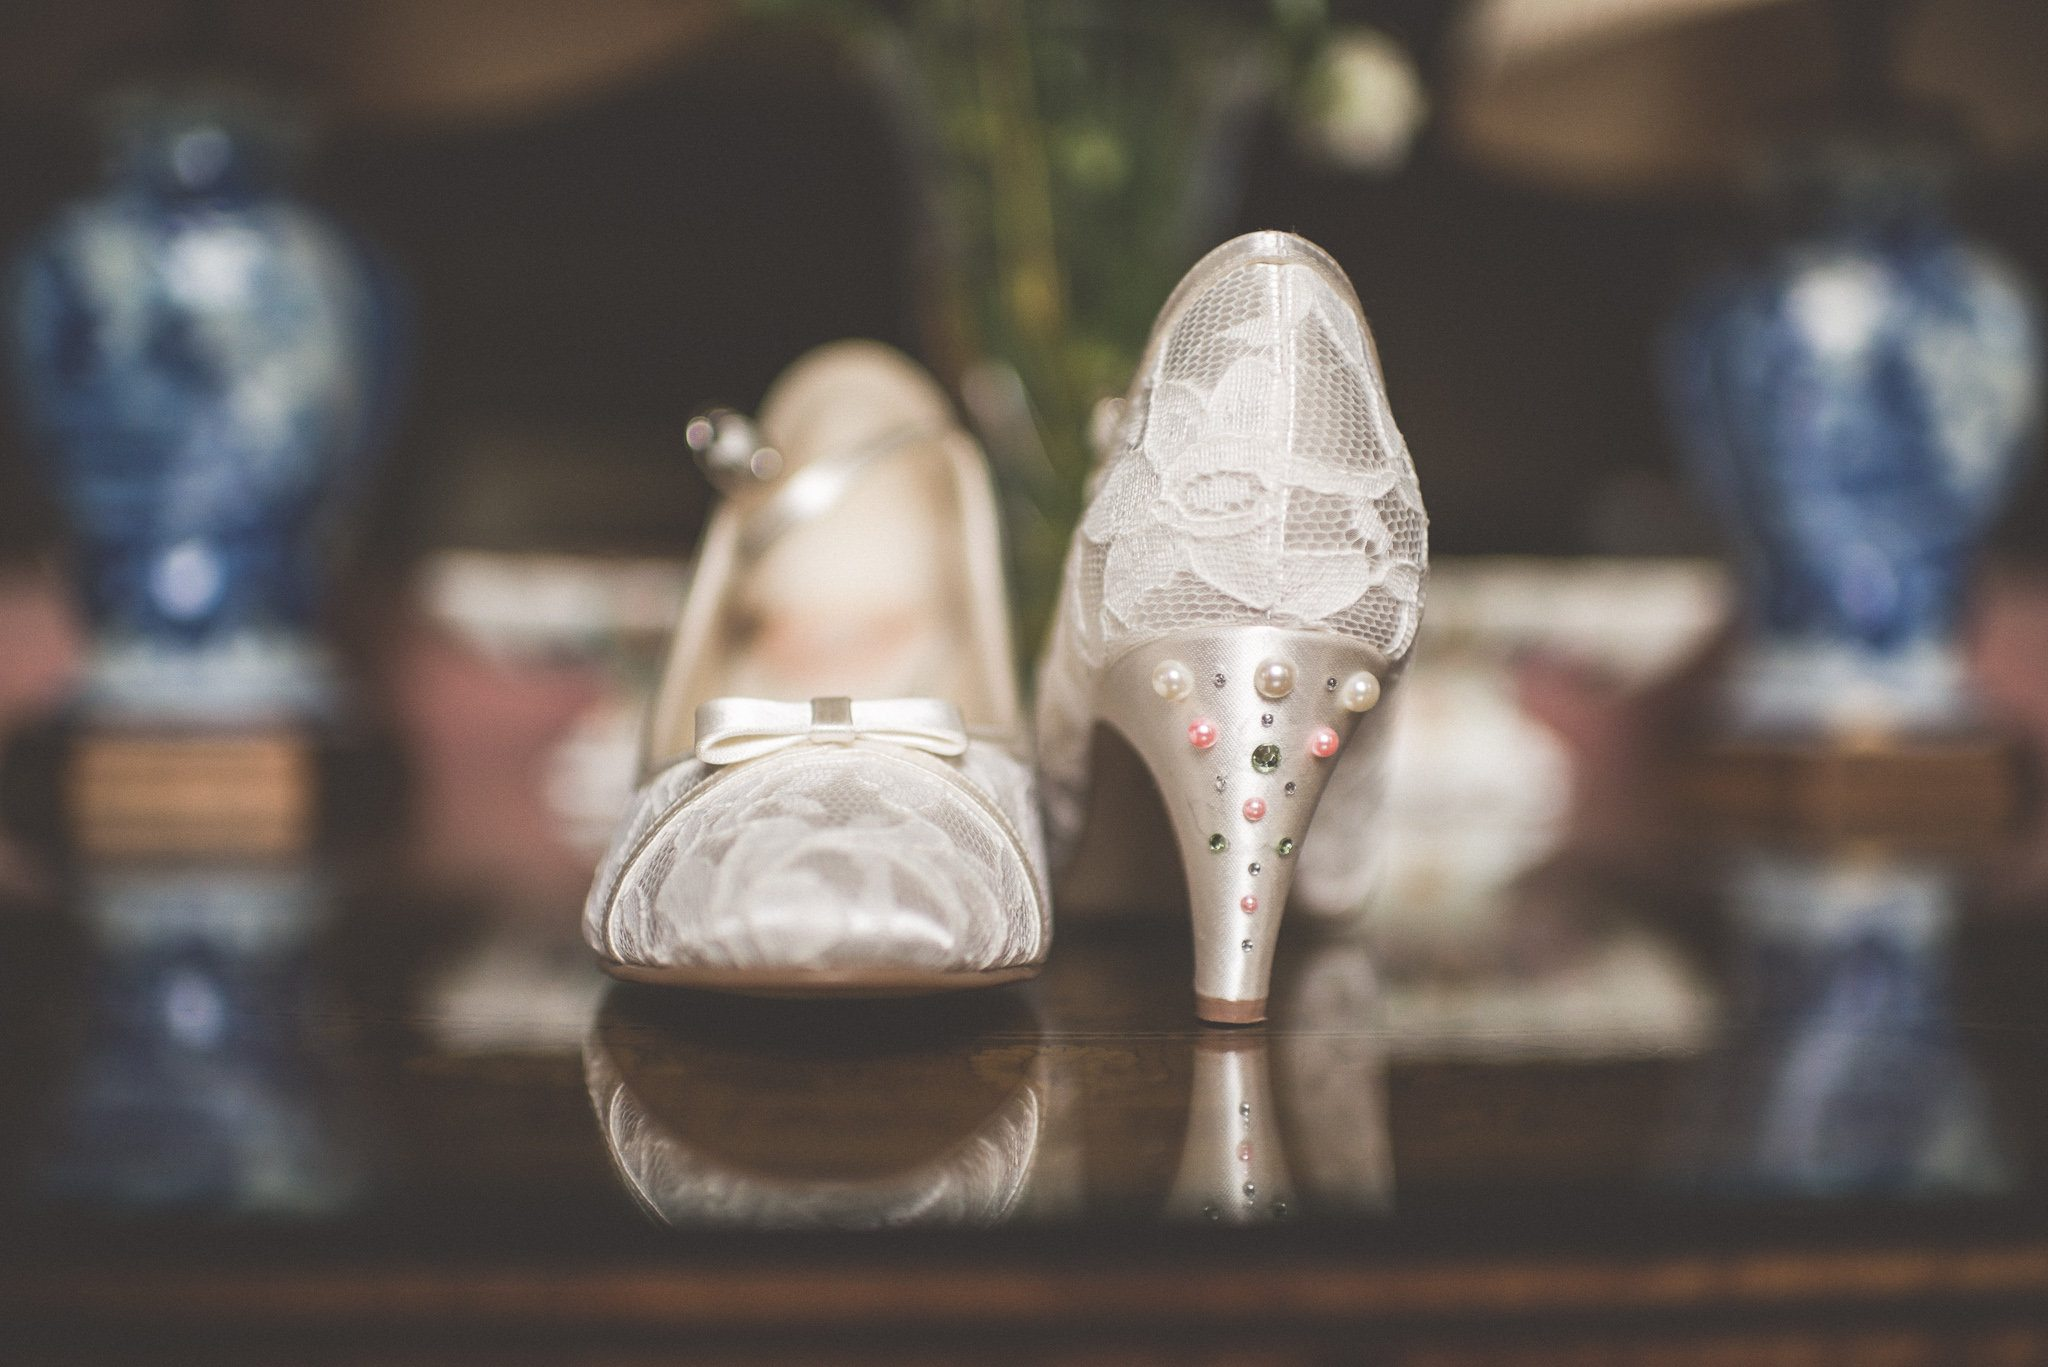 Ivory lace wedding shoes with pearls on the heels